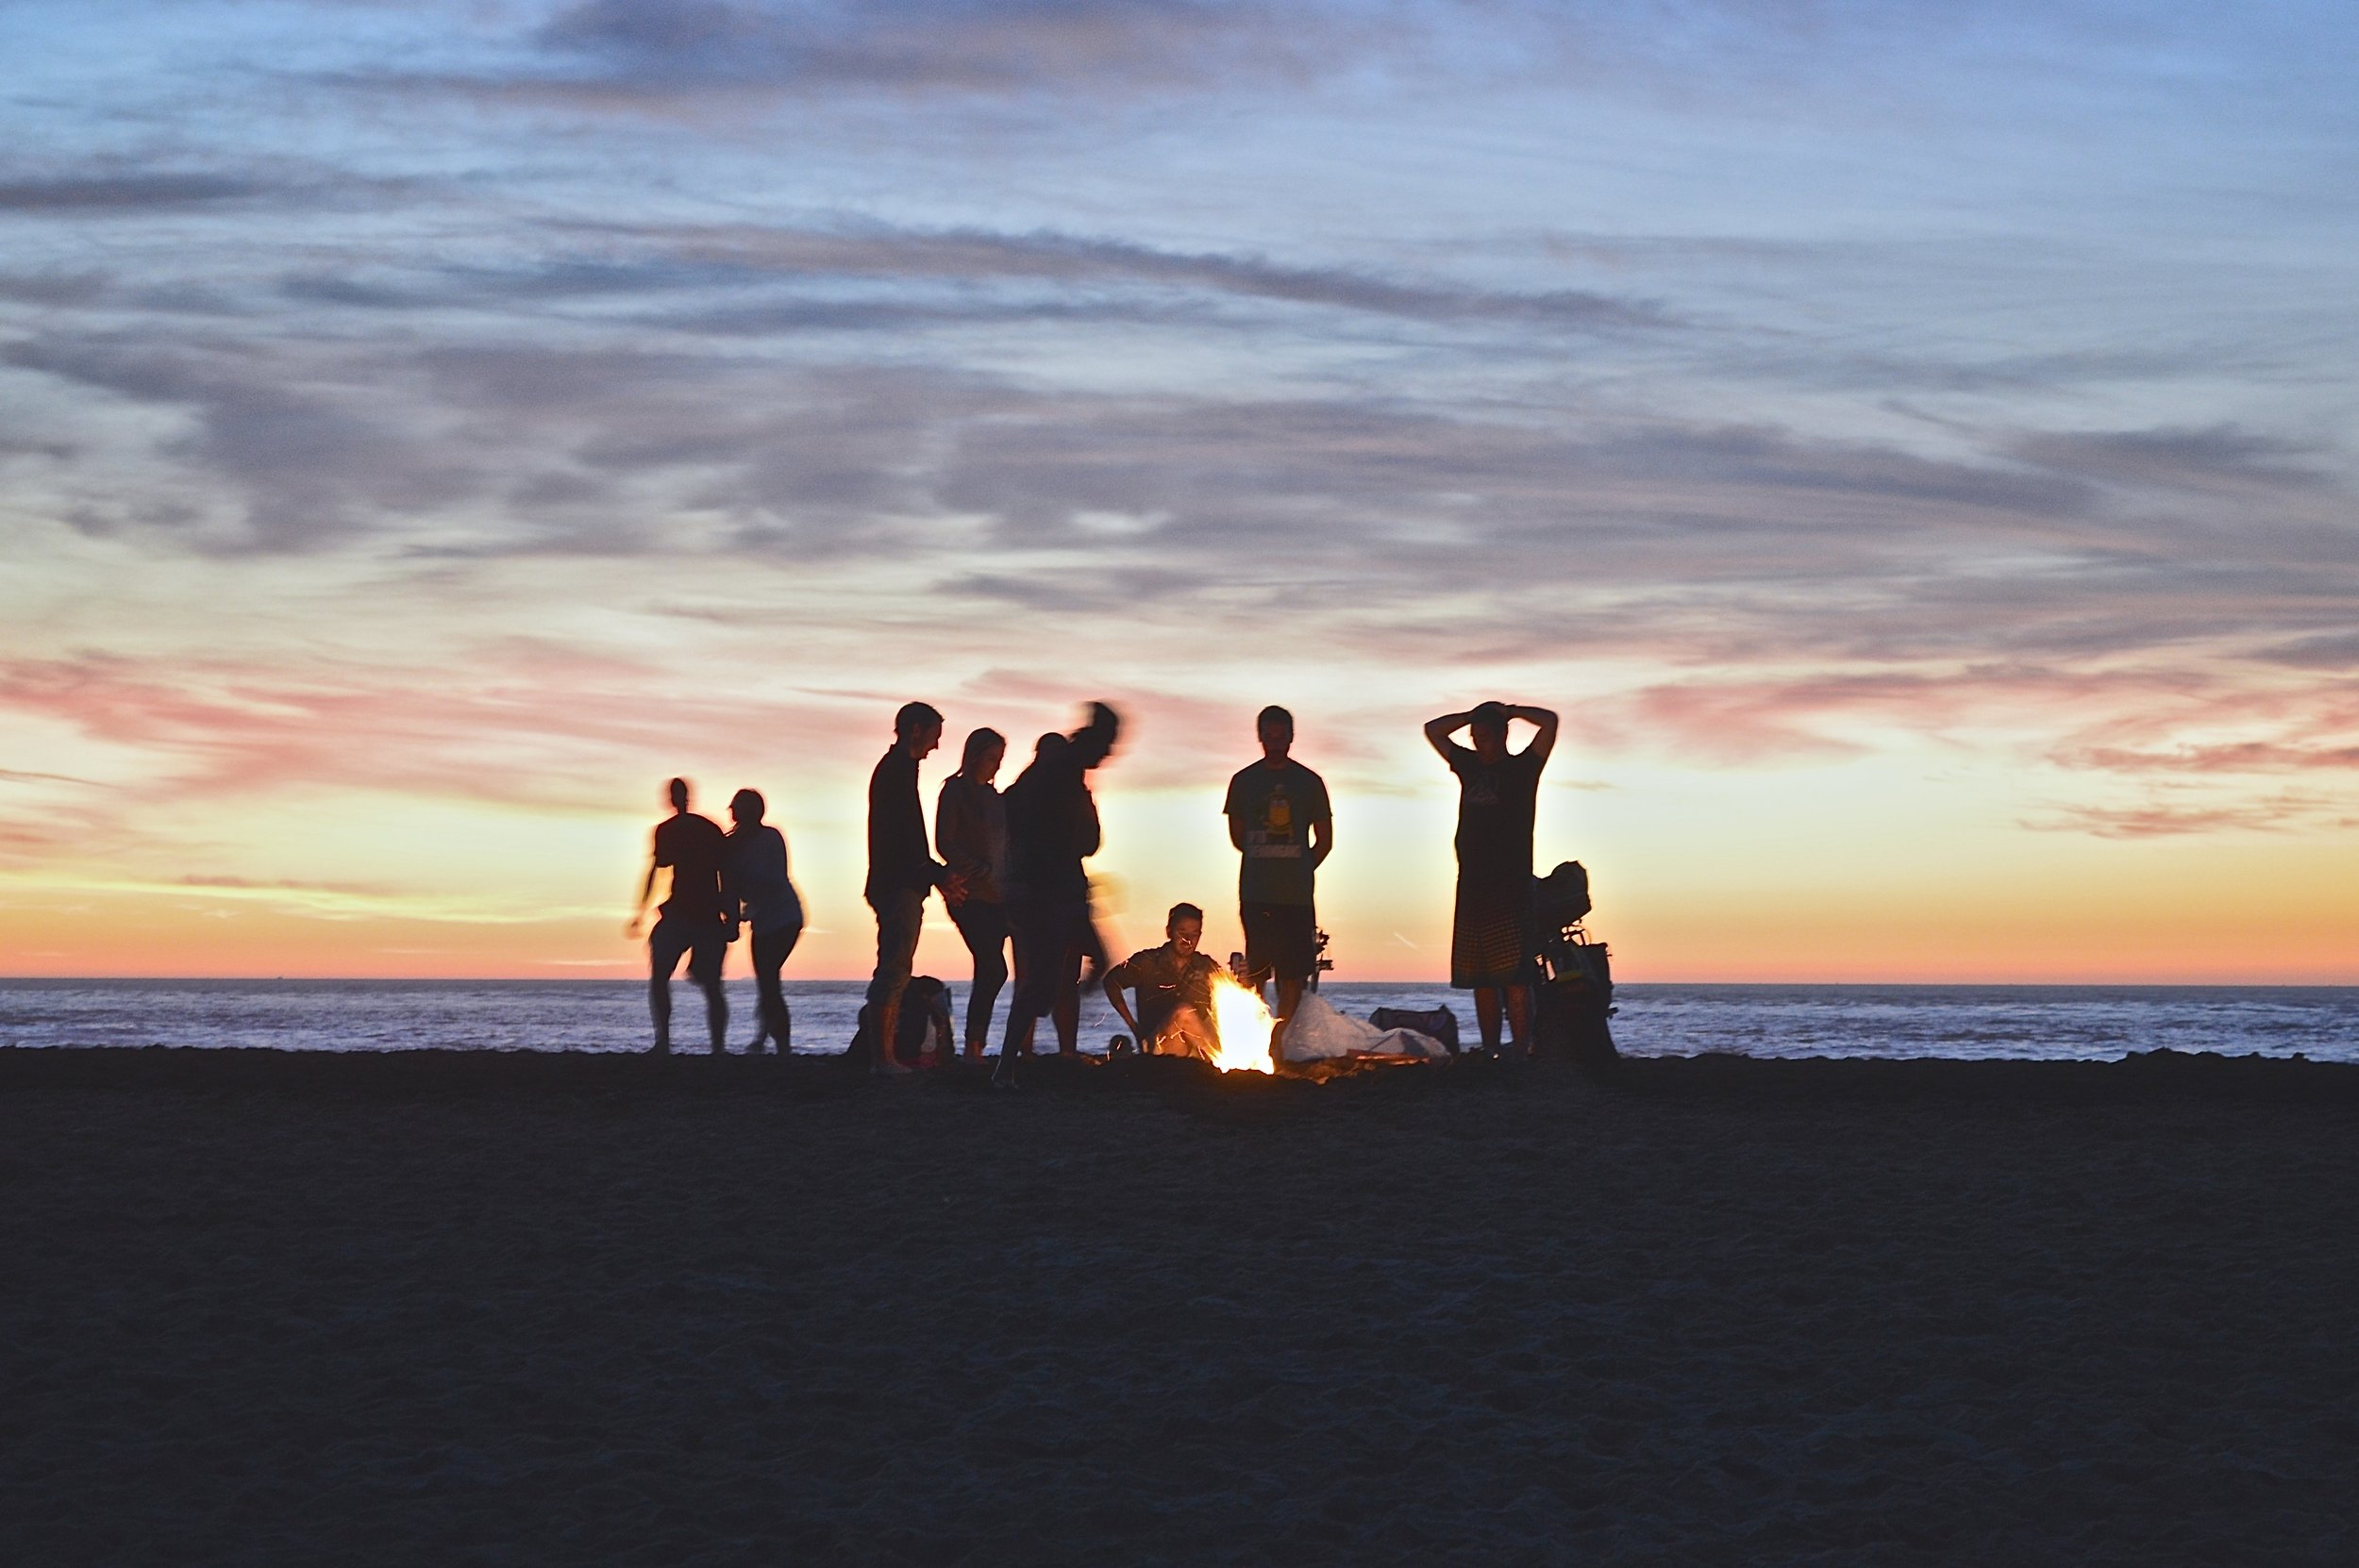 People around a campfire at nighttime. Photo by Kimson Doan on Unsplash